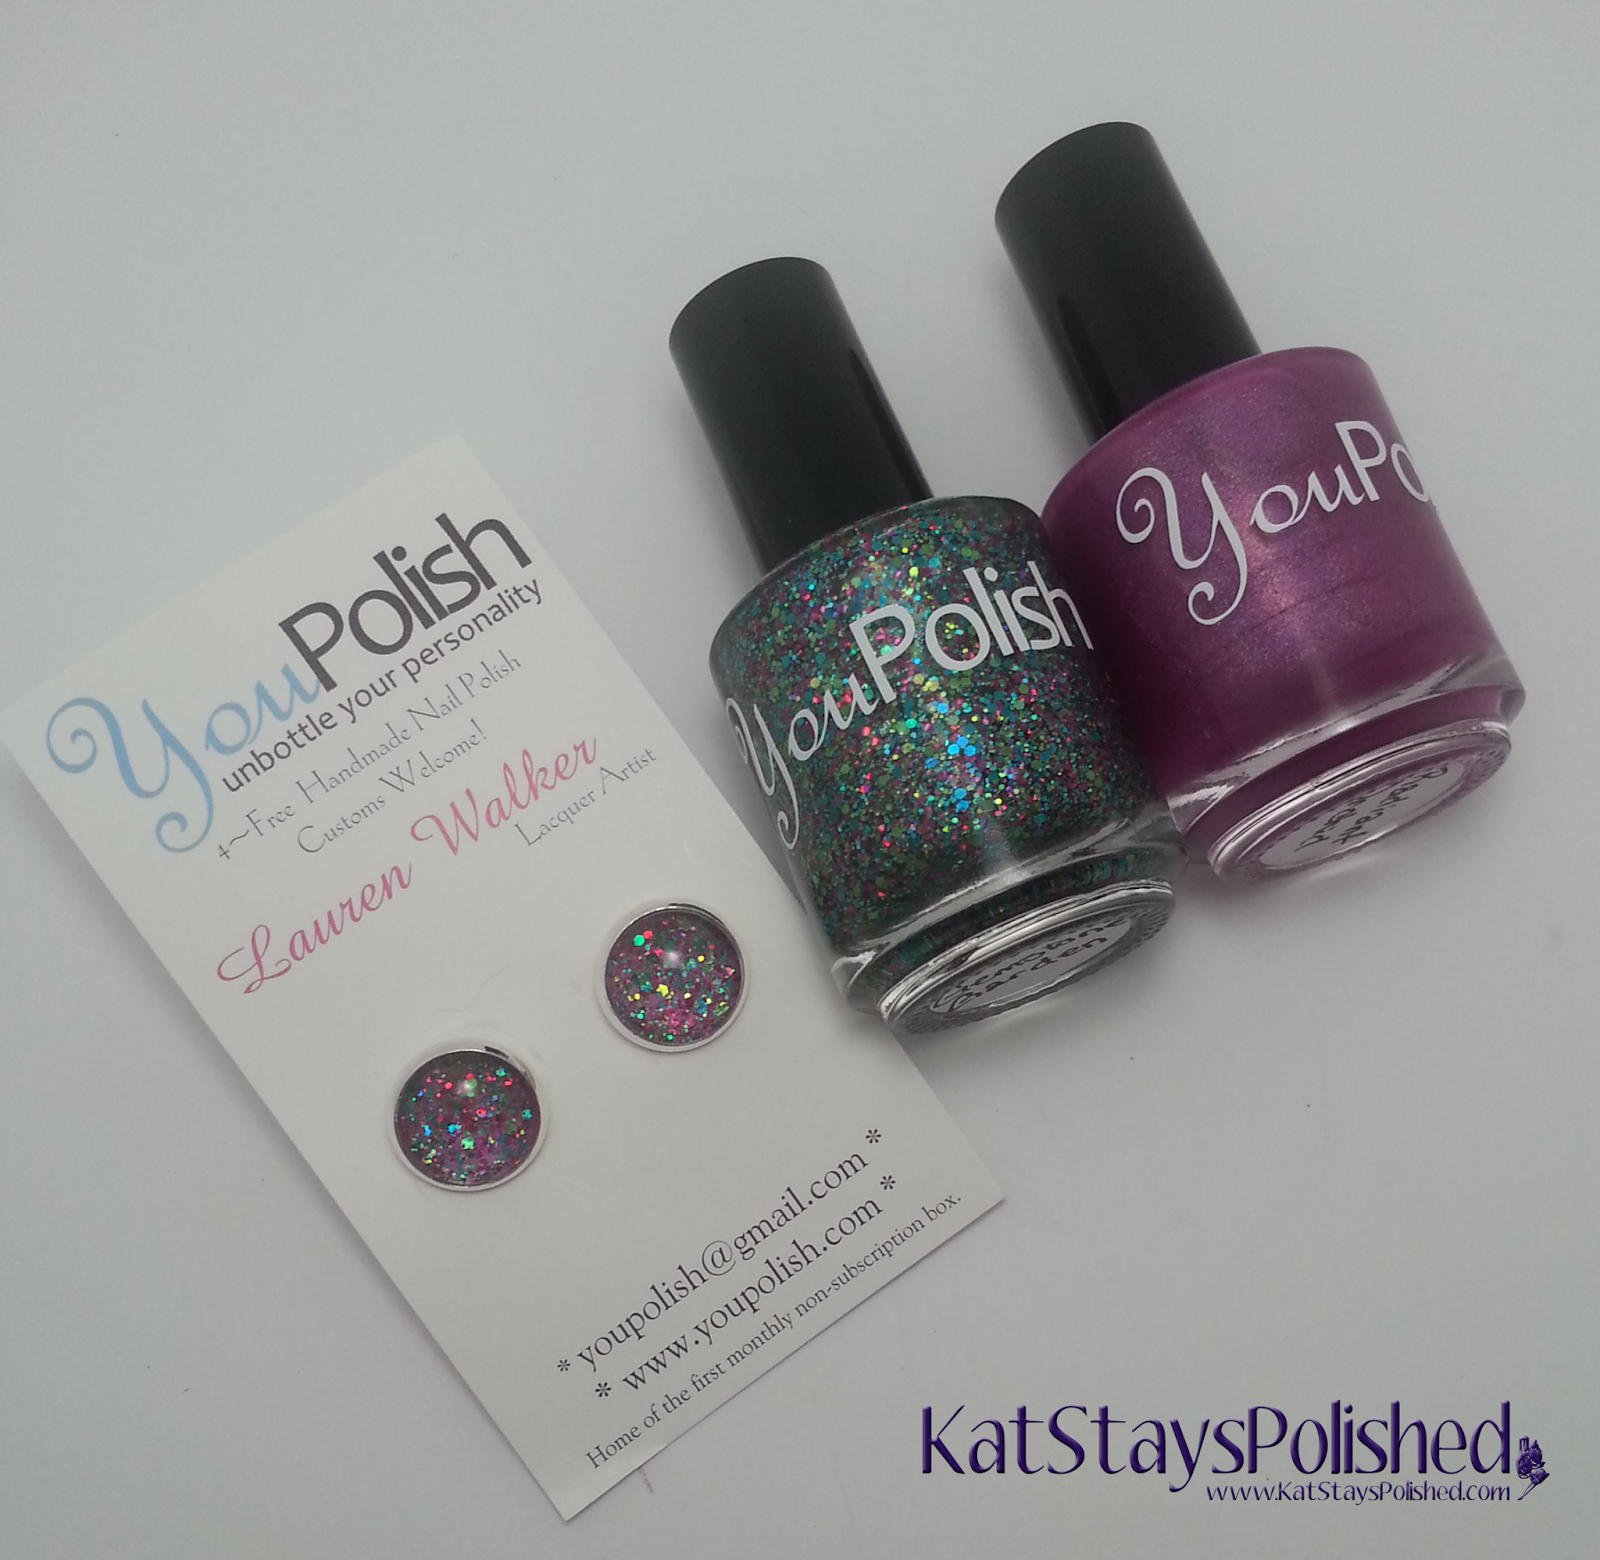 You Polish - Radiant Orchid and Gemstone Garden | Kat Stays Polished